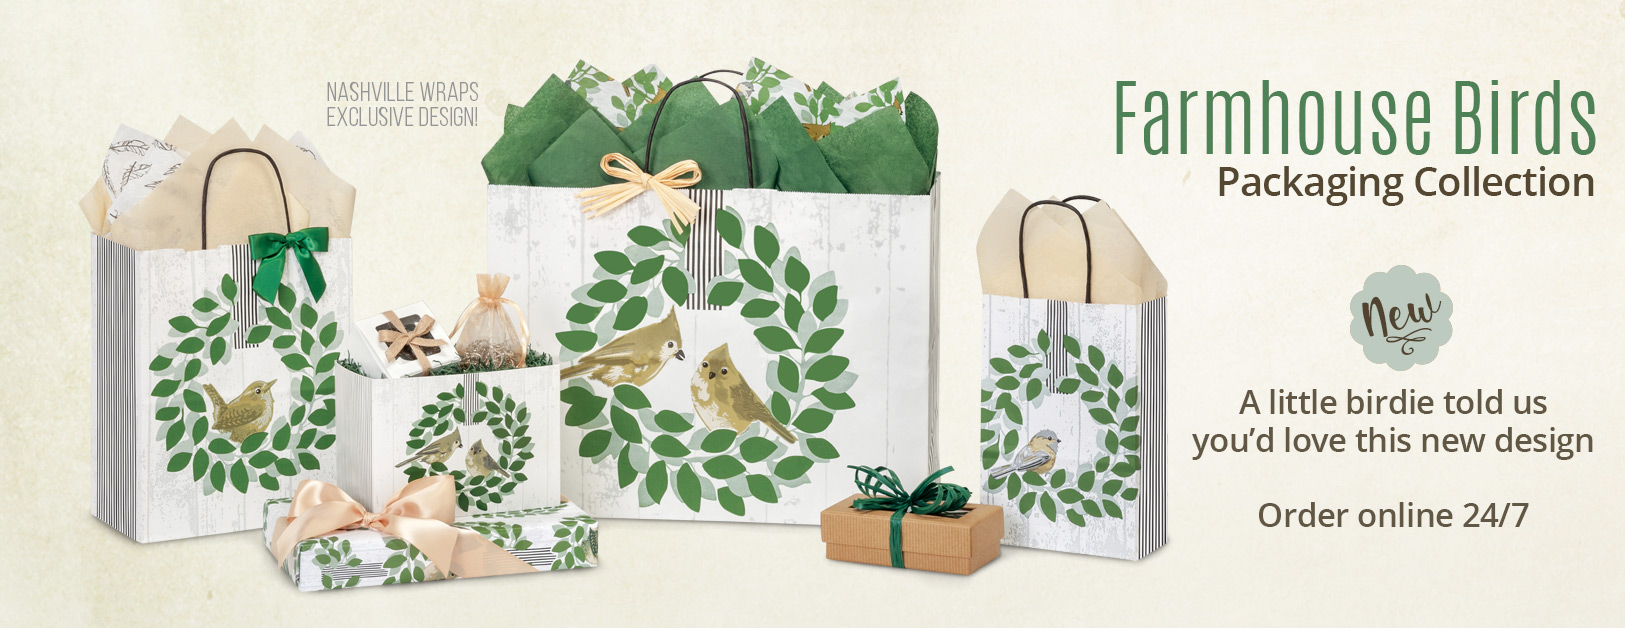 Farmhouse Birds Packaging Collection from Nashville Wraps